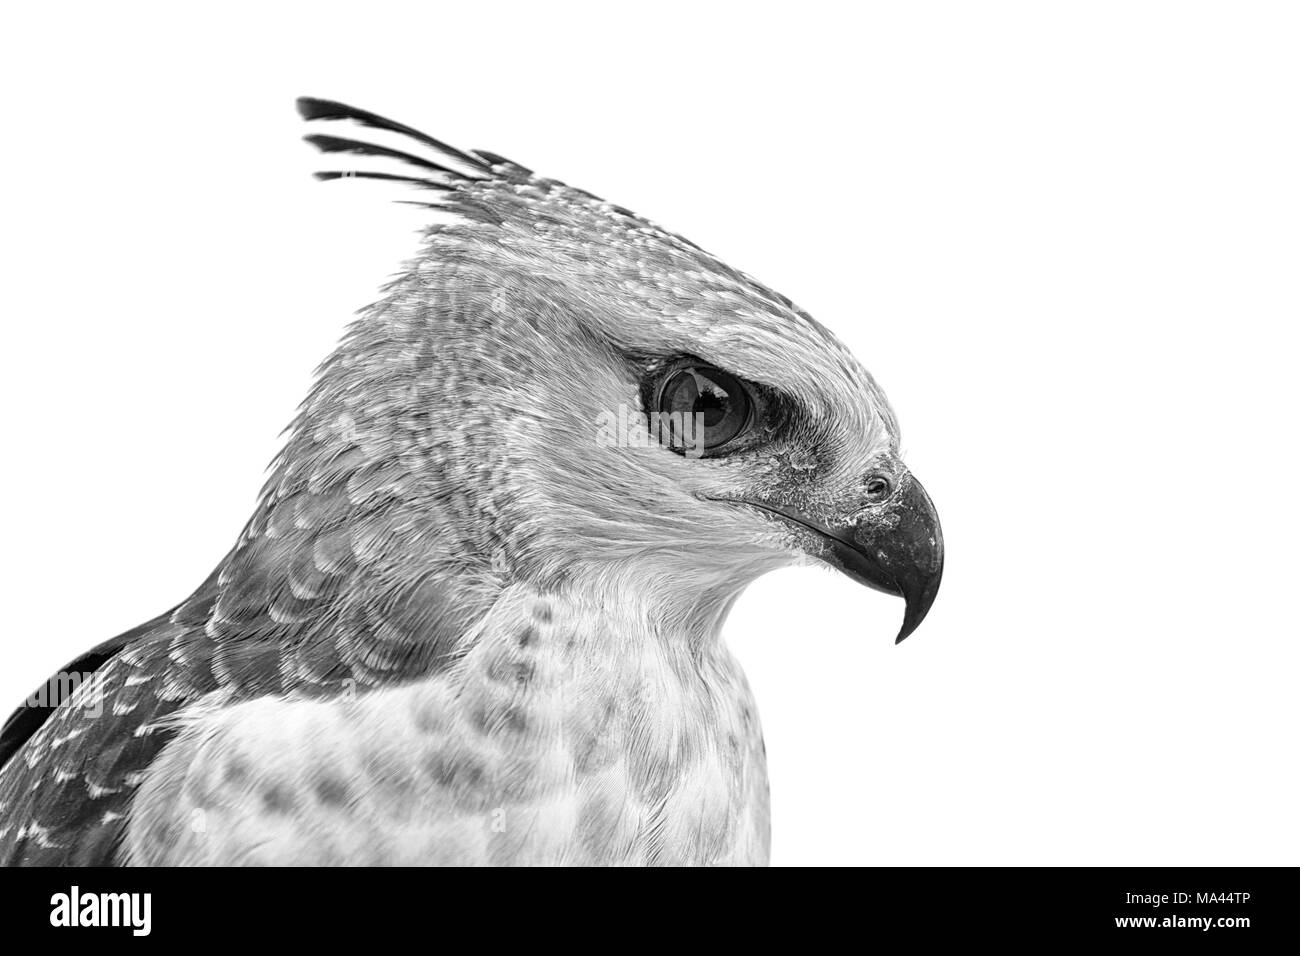 Portrait of the face of the crested Goshawk - Stock Image